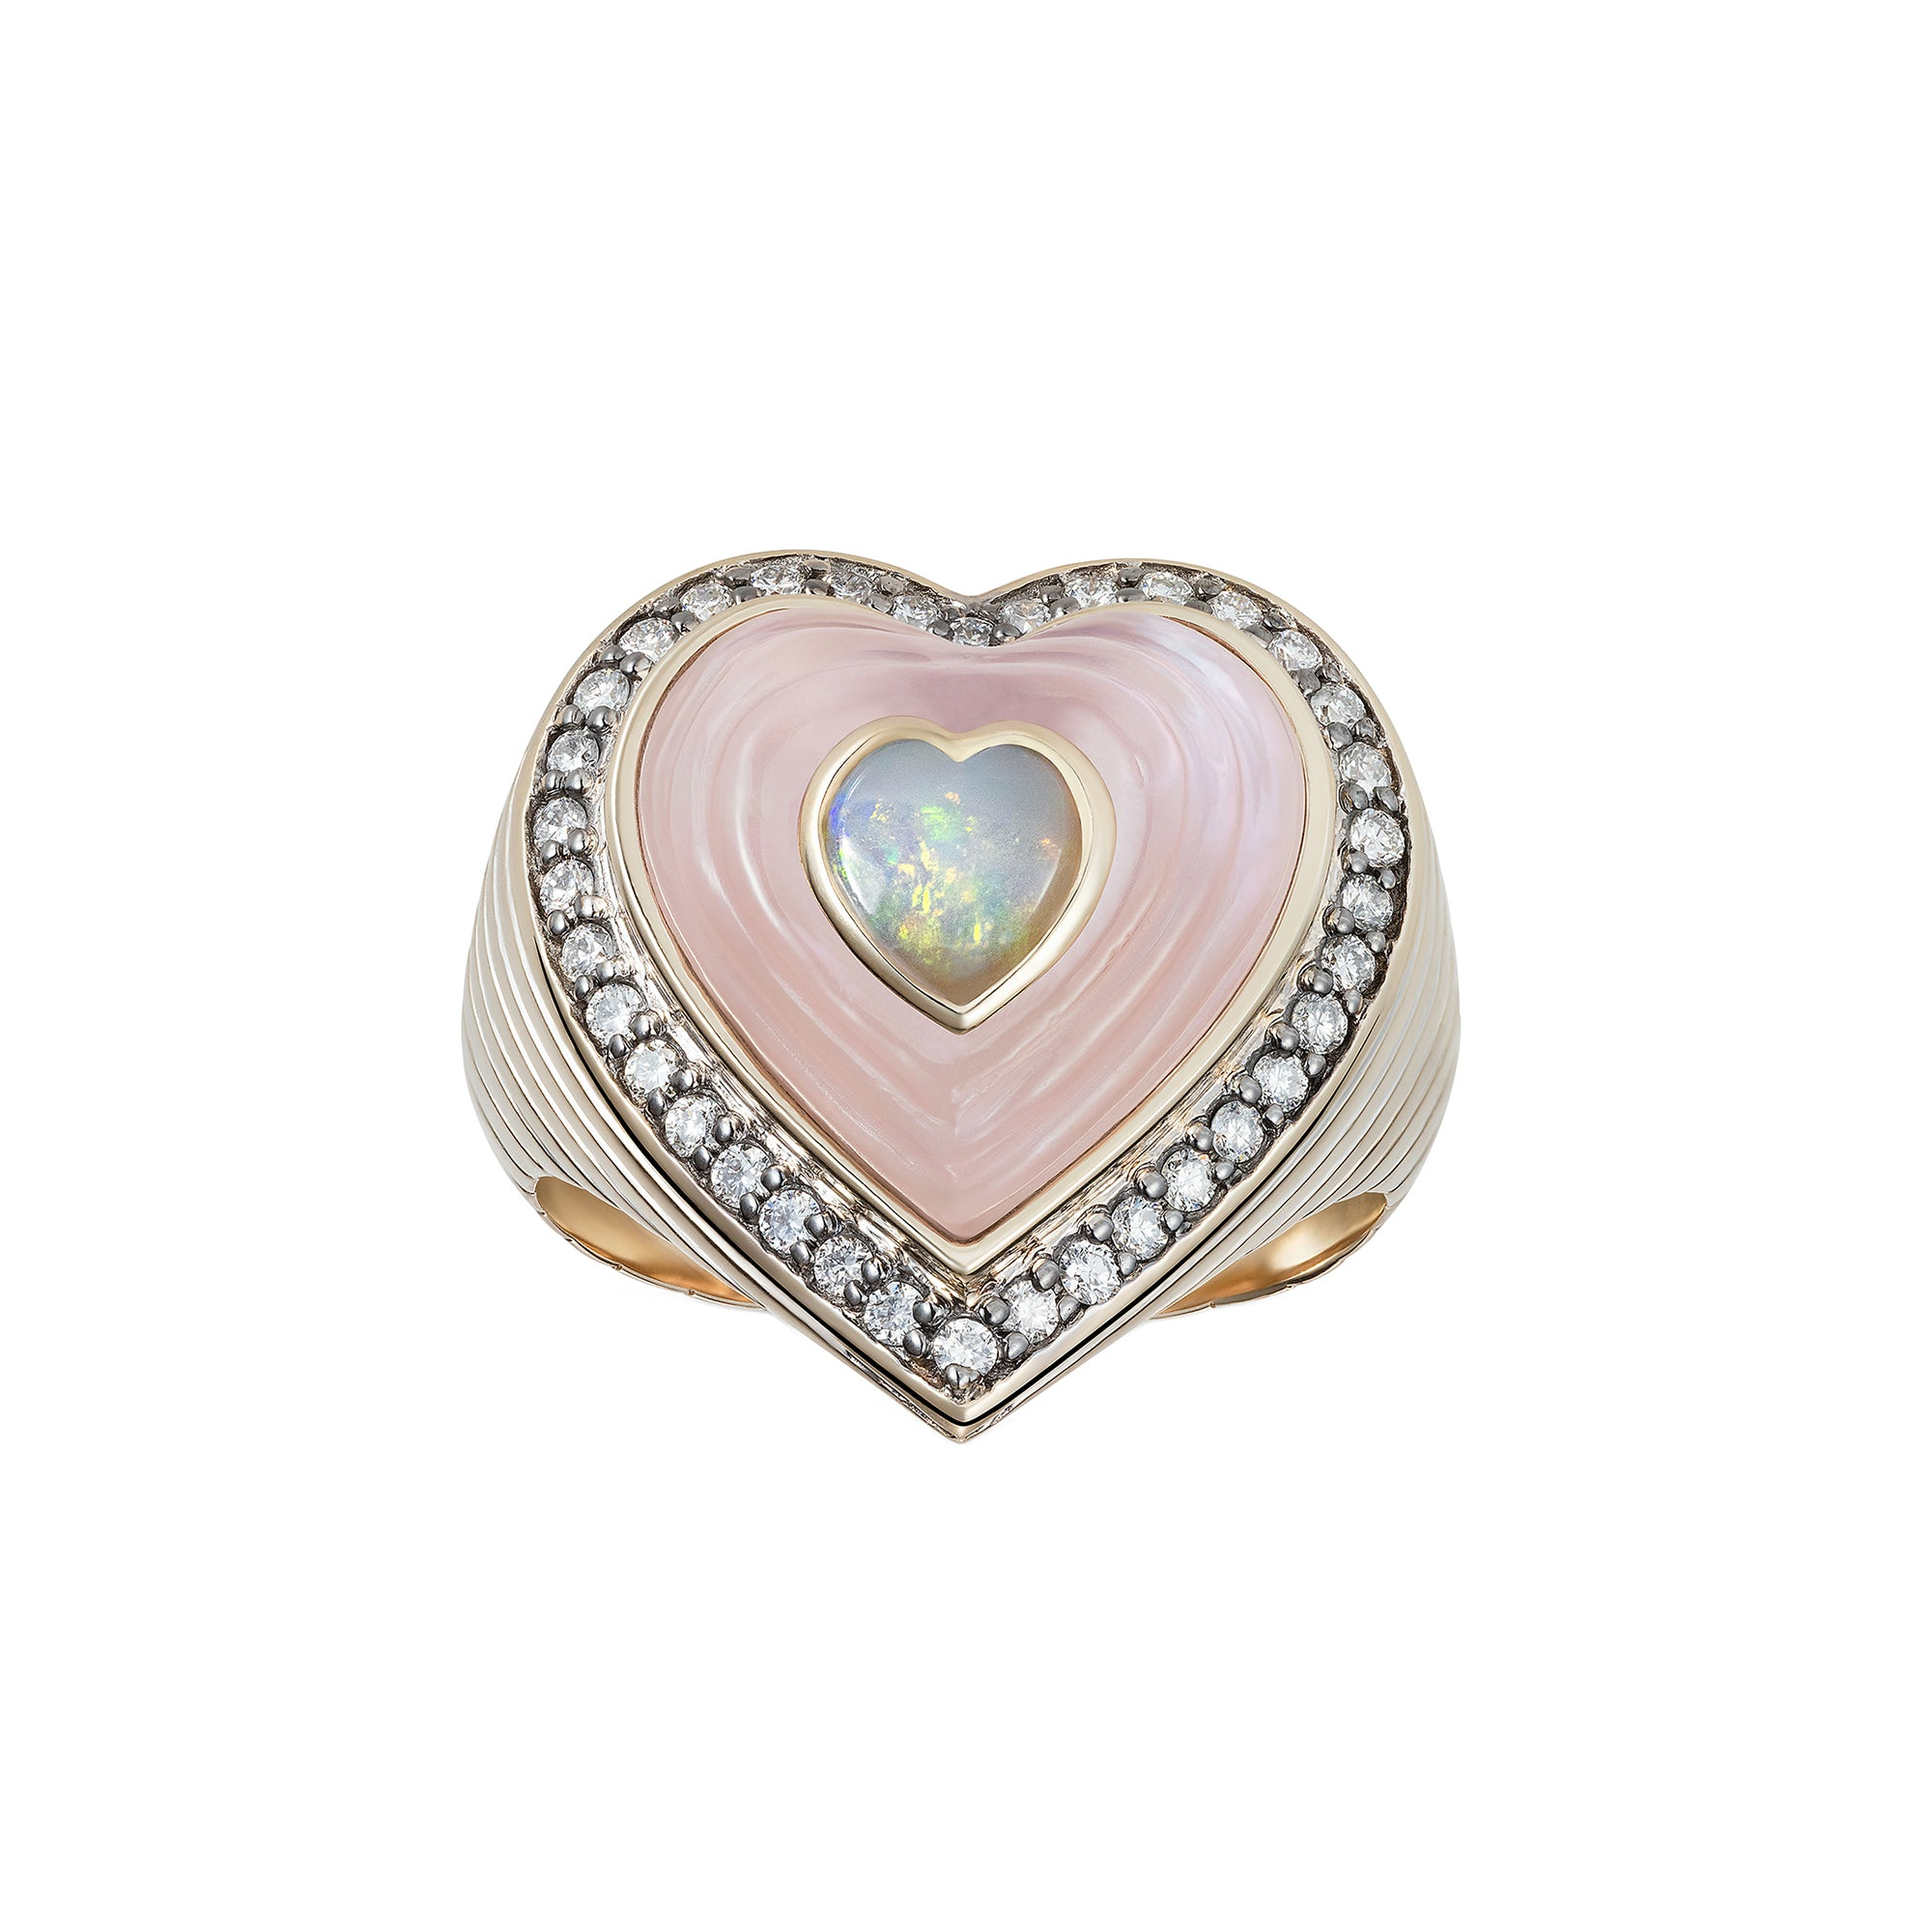 Anahata Heart Ring by Noor Fares for Broken English Jewelry